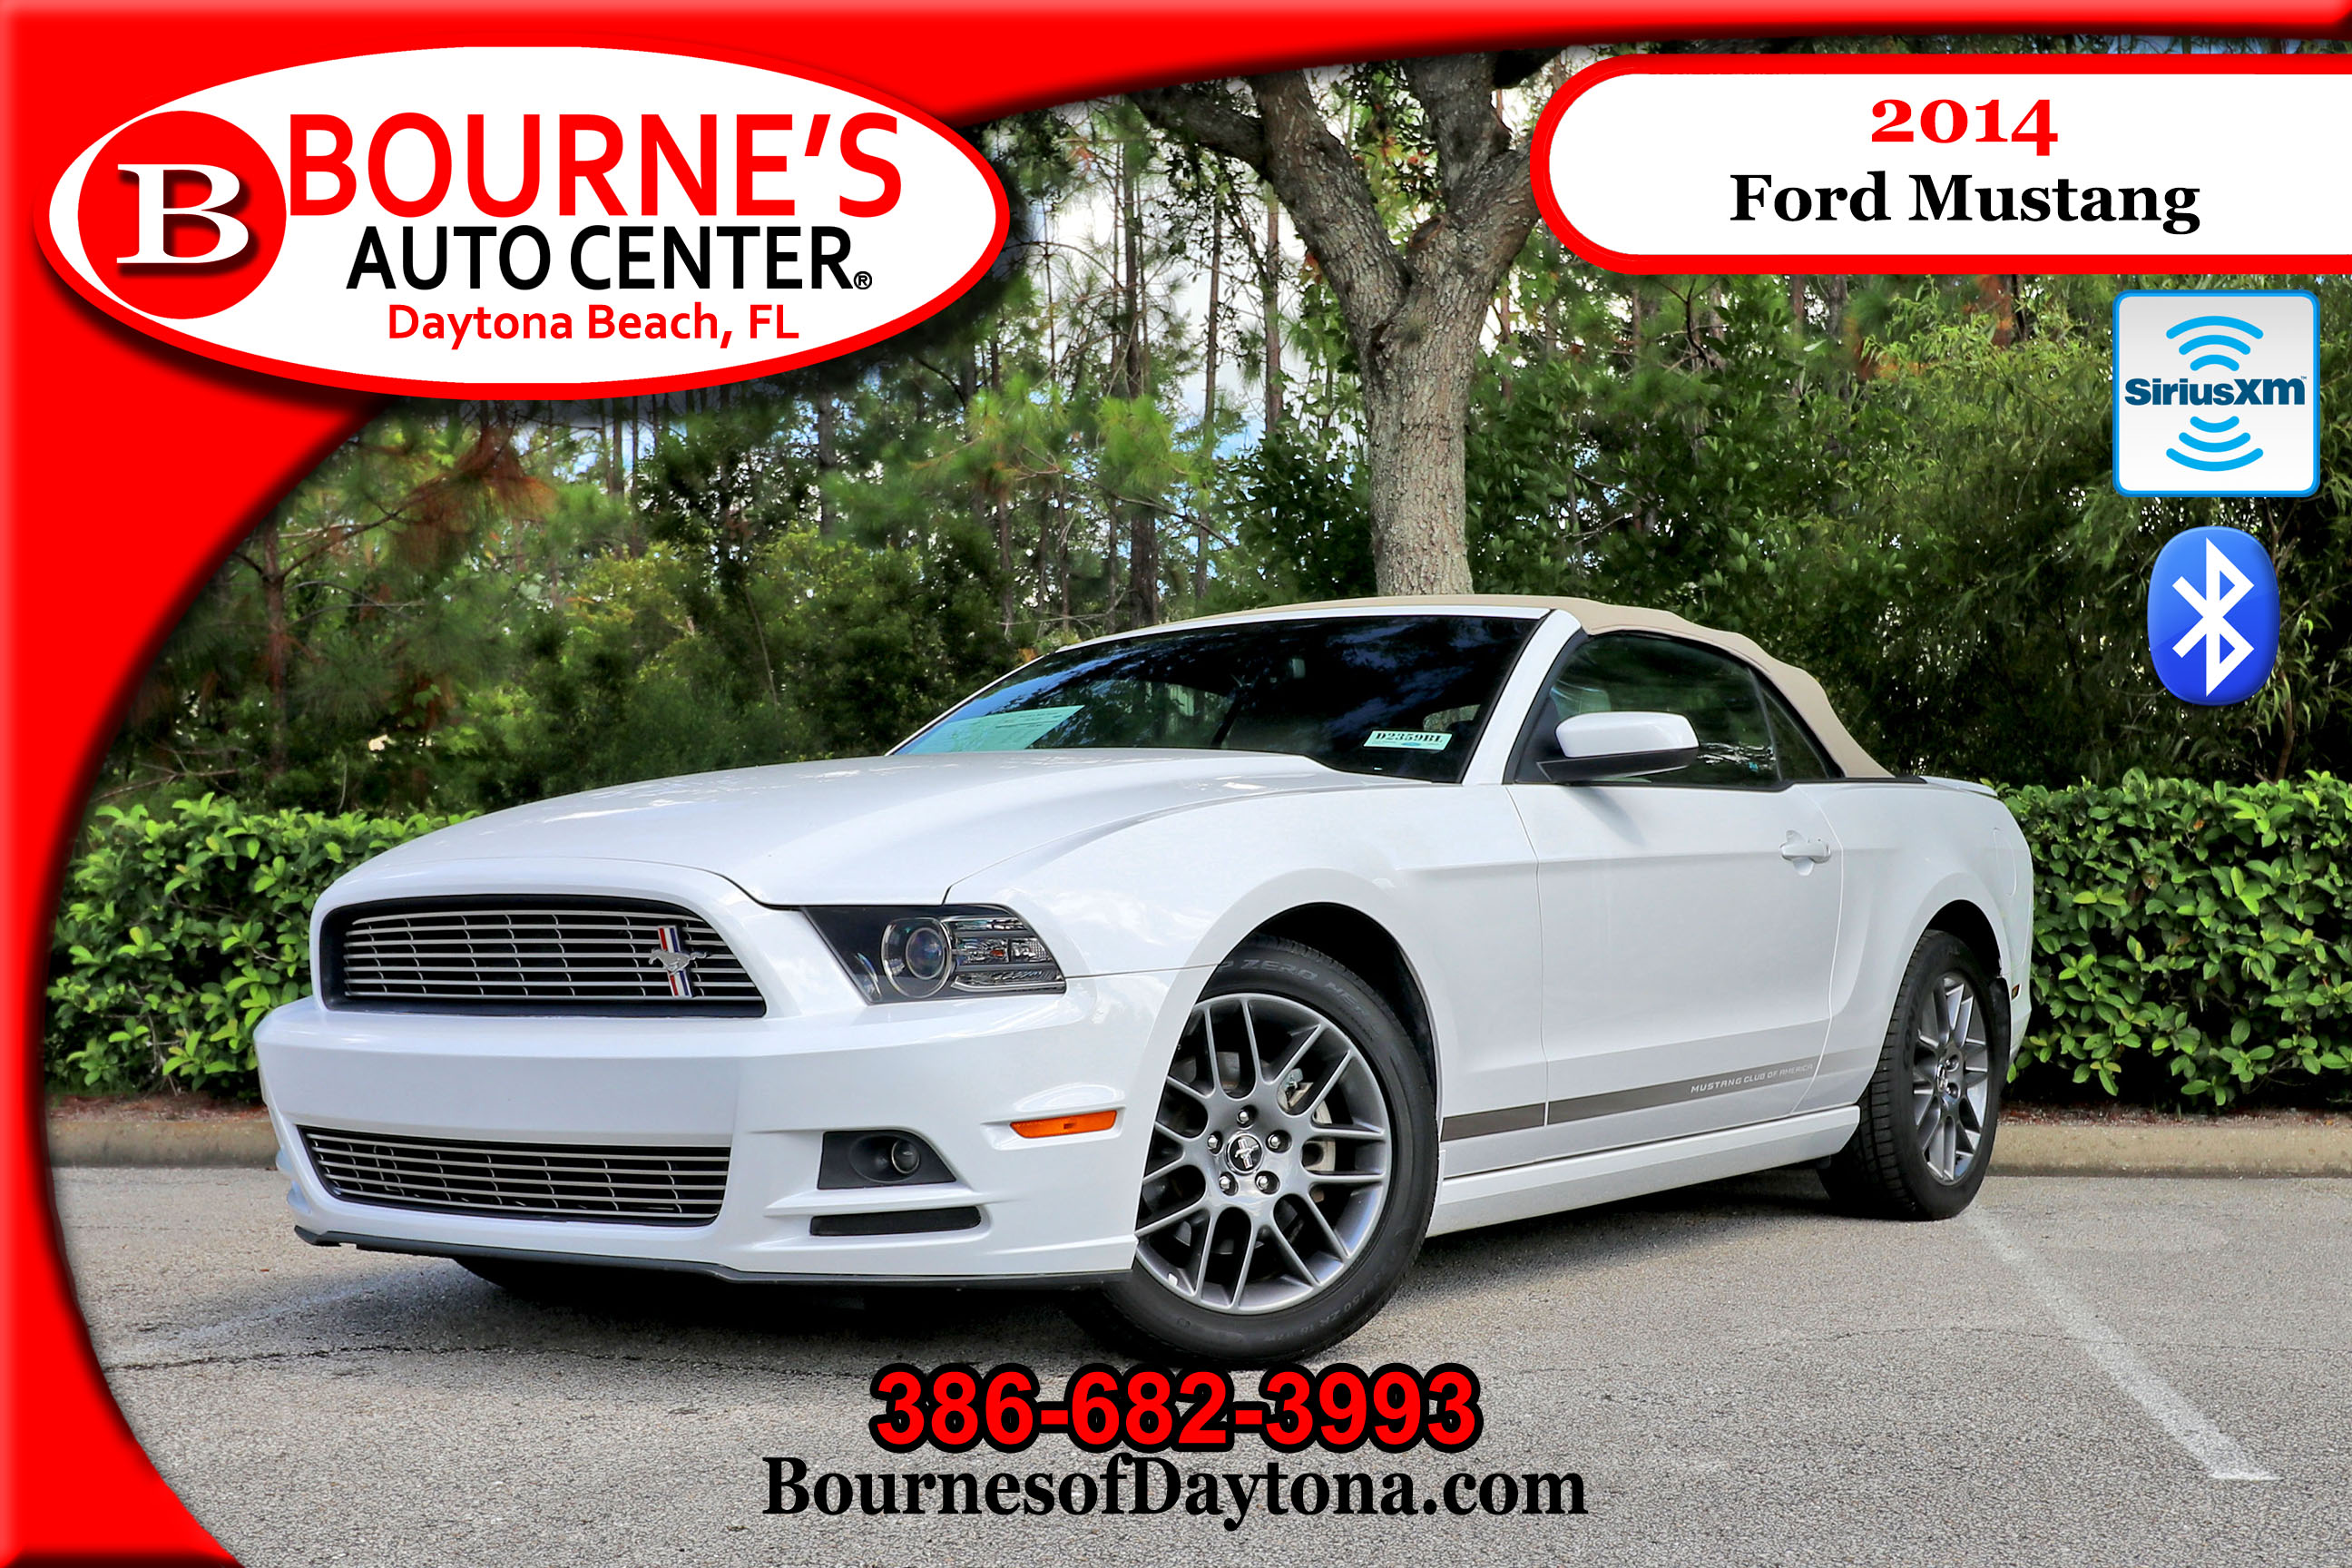 2014 Ford Mustang Xm/ Bluetooth/ Leather Soft Top Convertible